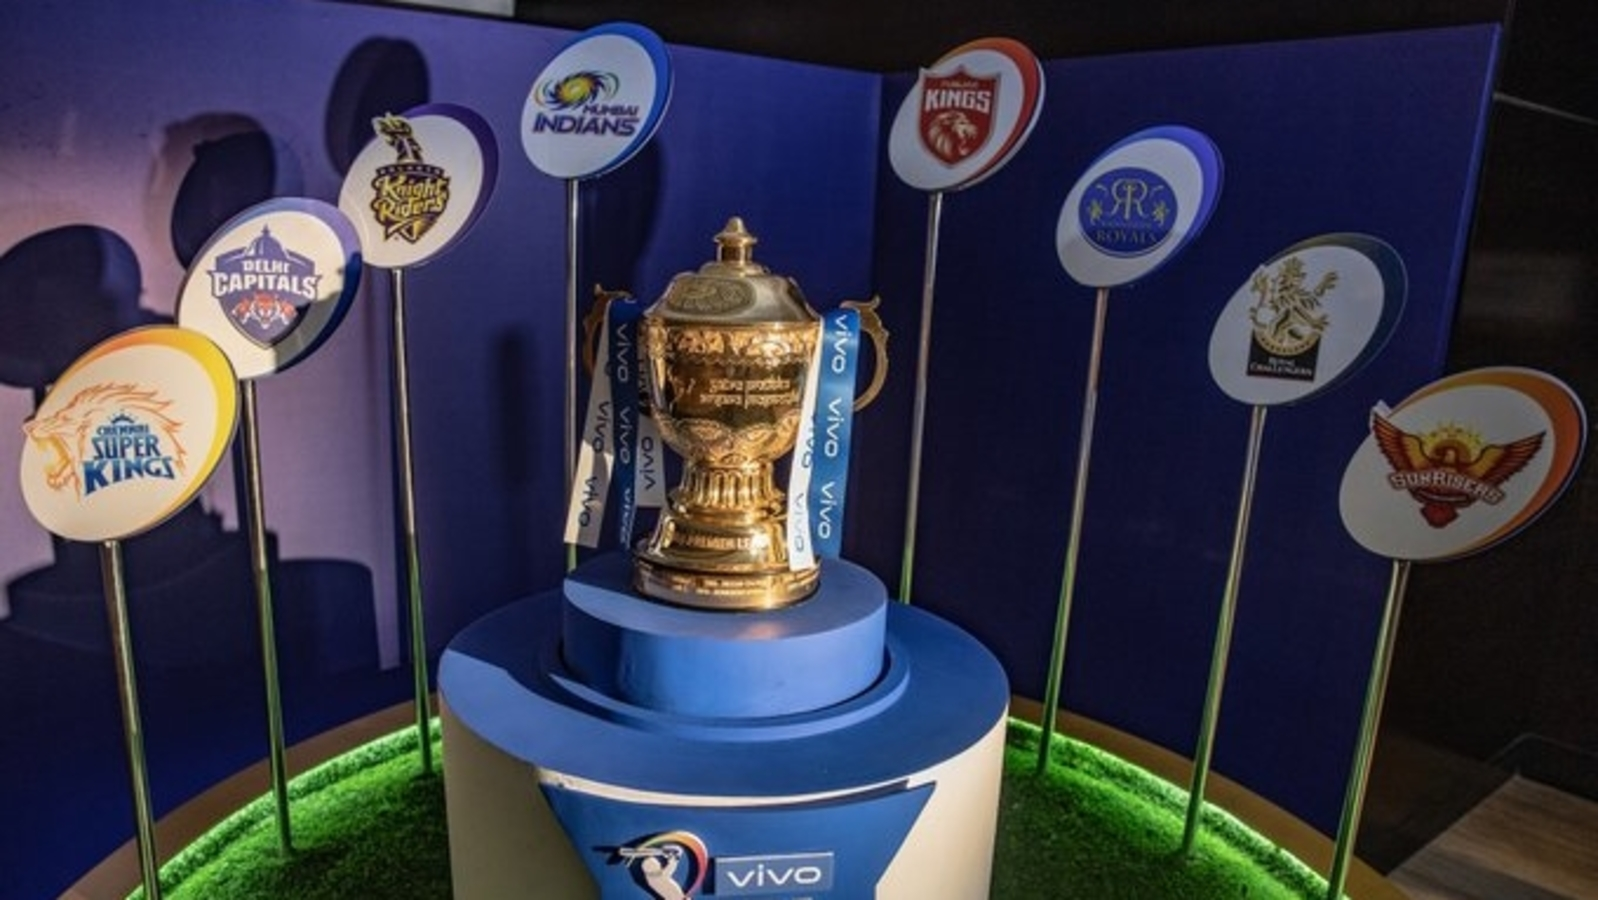 IPL 2021 to begin on April 9, says BCCI source   Hindustan ...